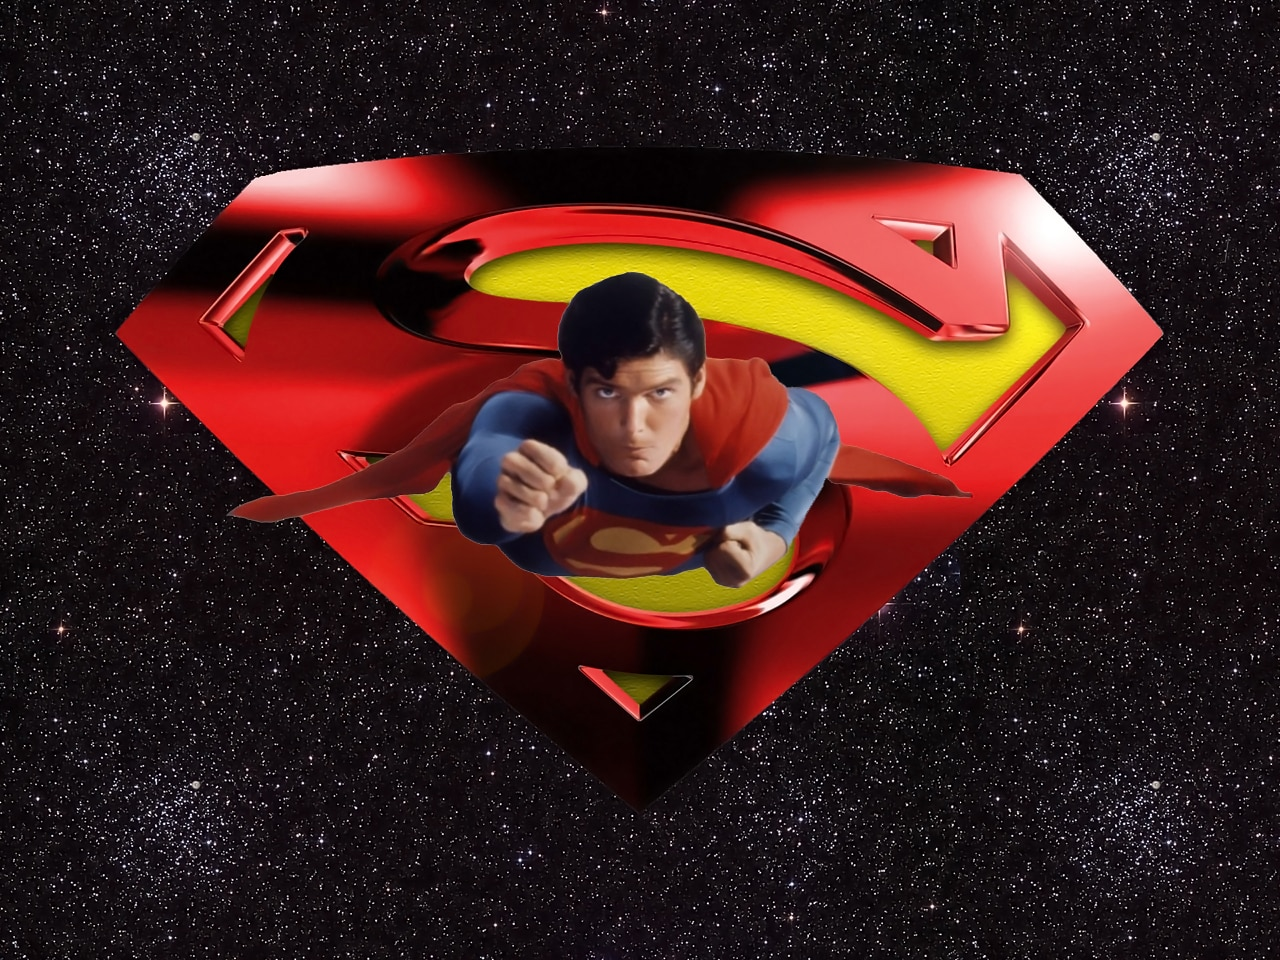 christopher_reeve_superman_wp_by_swfan1977-d31z8vt